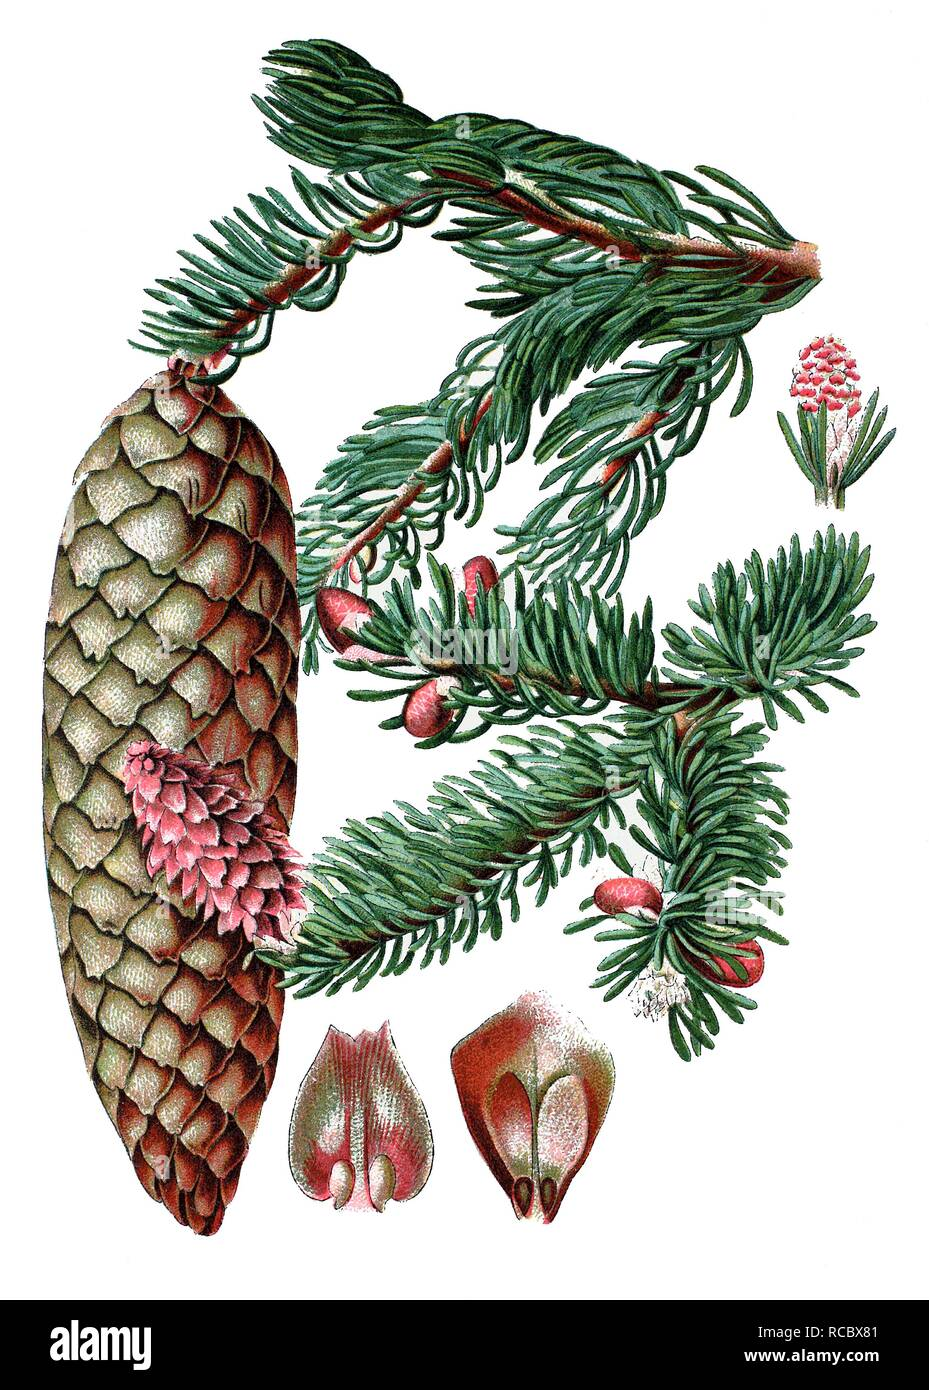 Norway spruce (Pinus abies), medicinal plant, historical chromolithography, 1870 - Stock Image